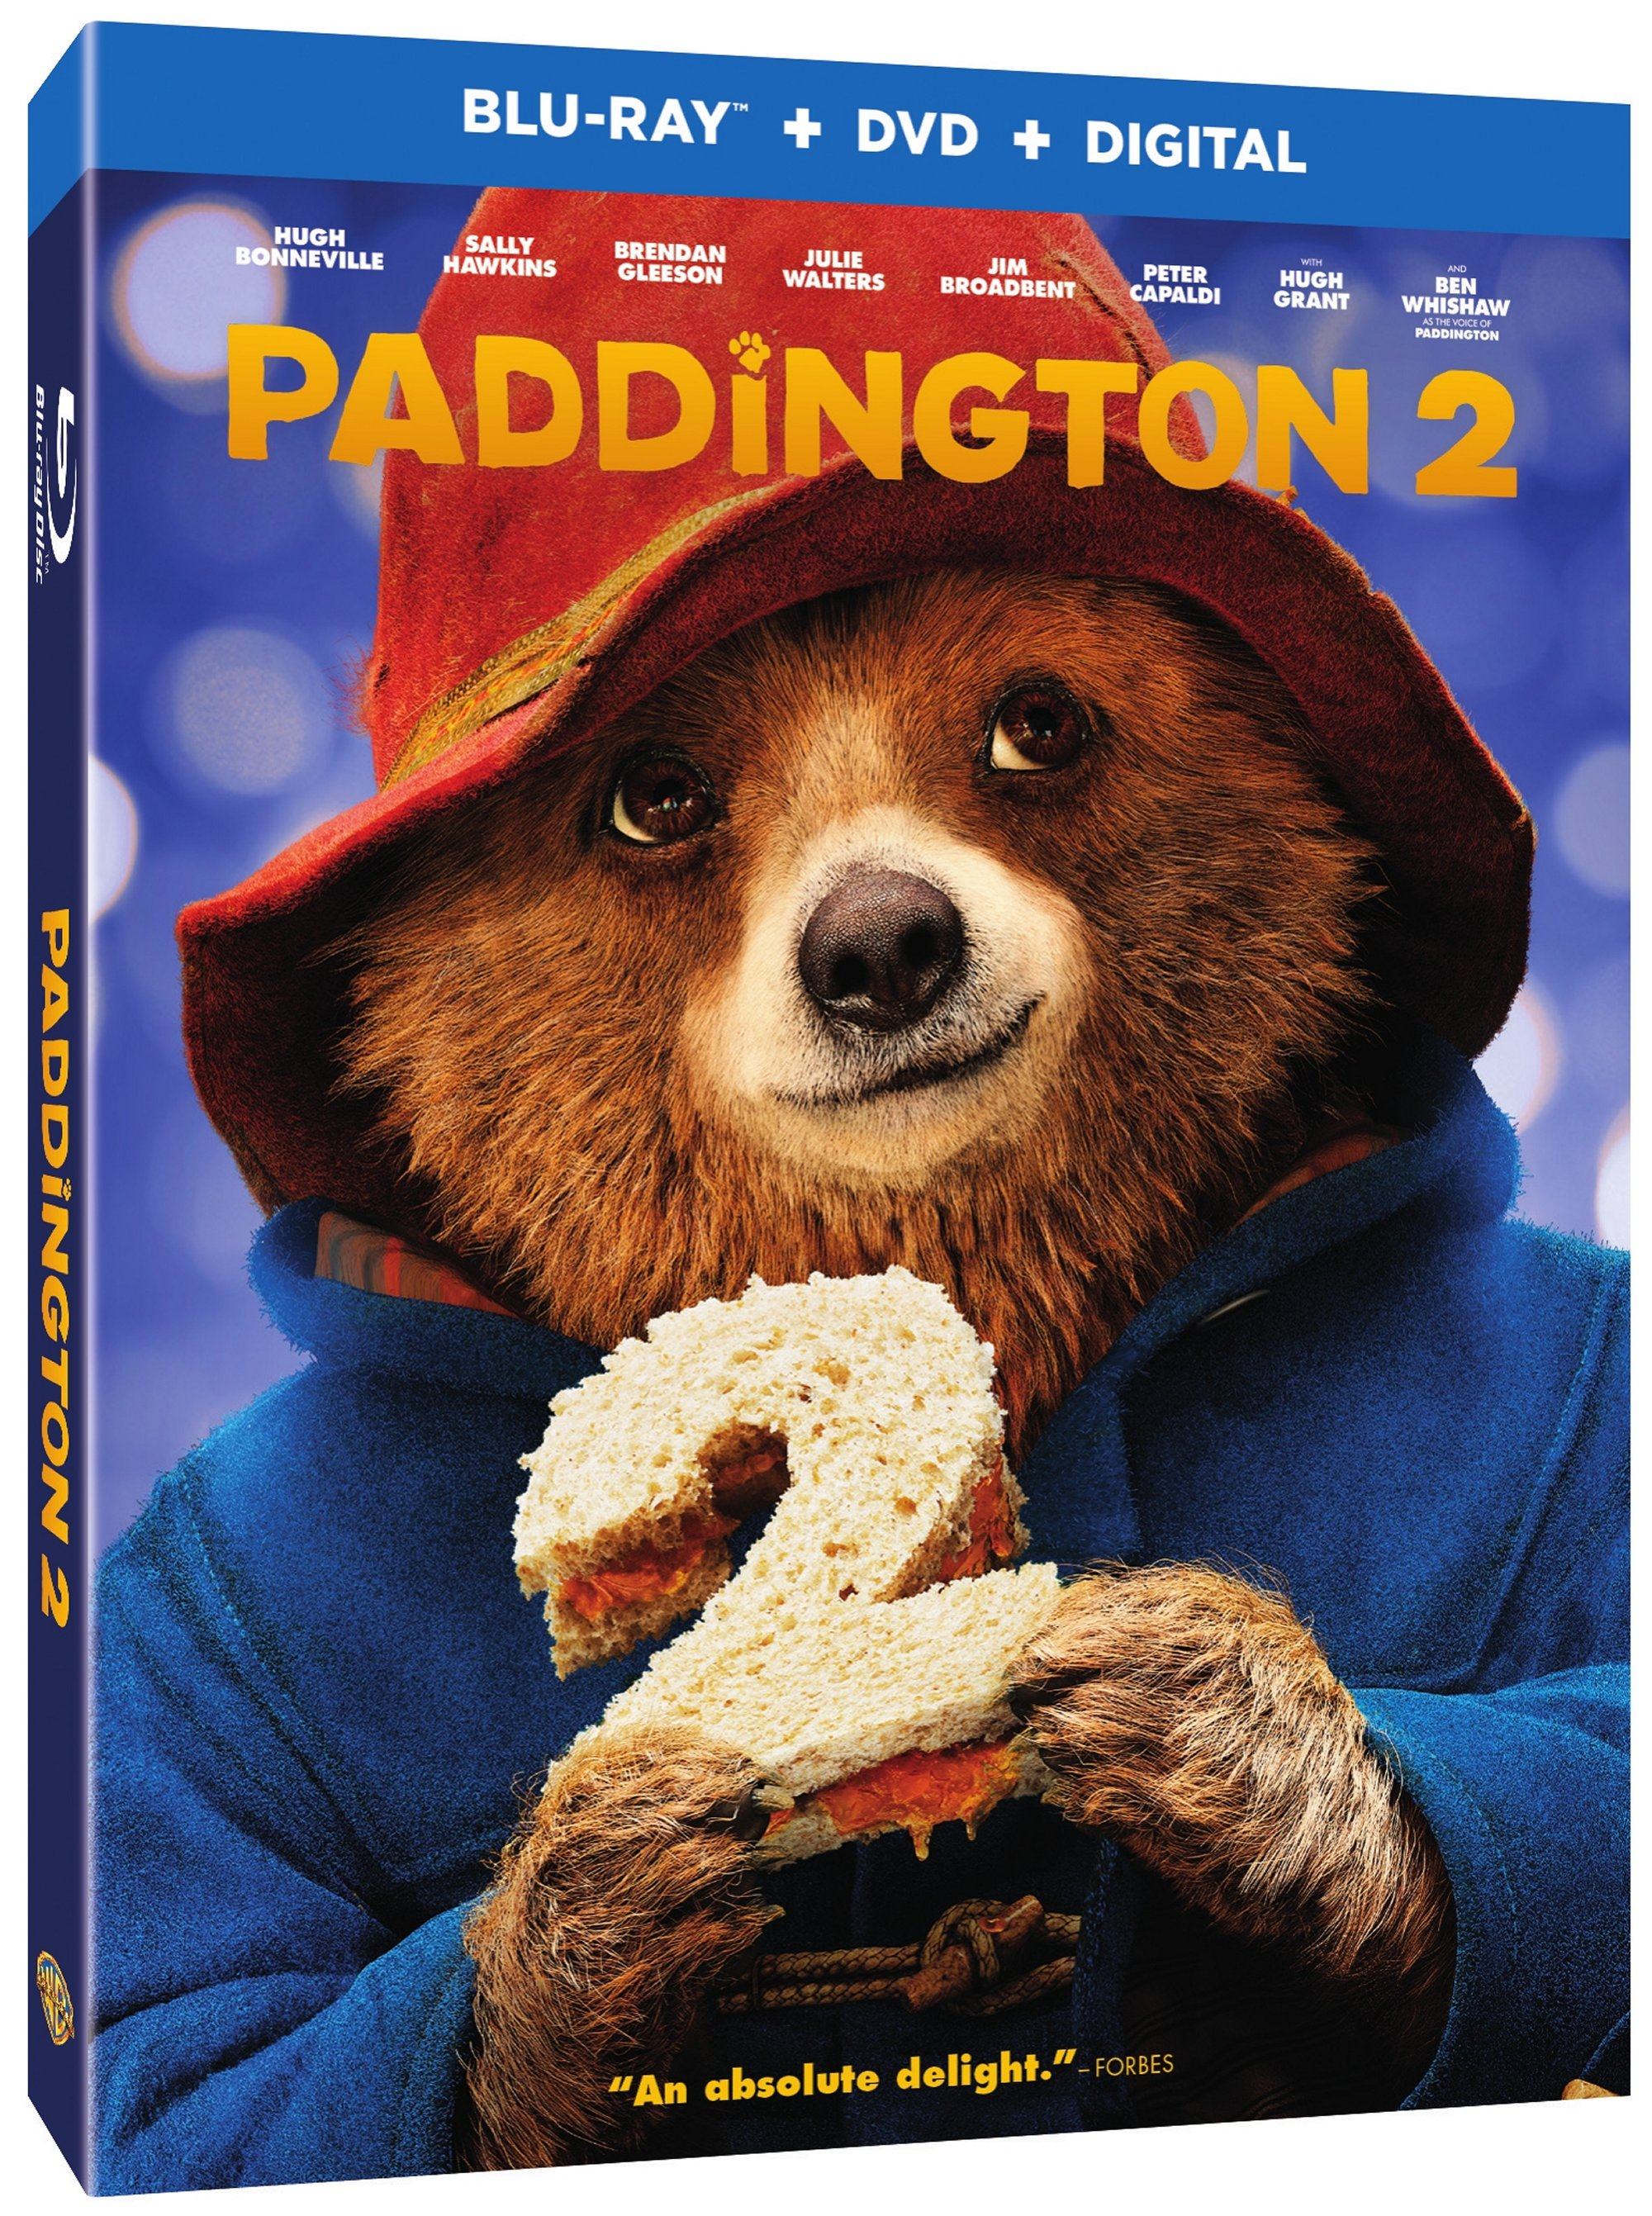 Paddington 2 Blu-ray Review